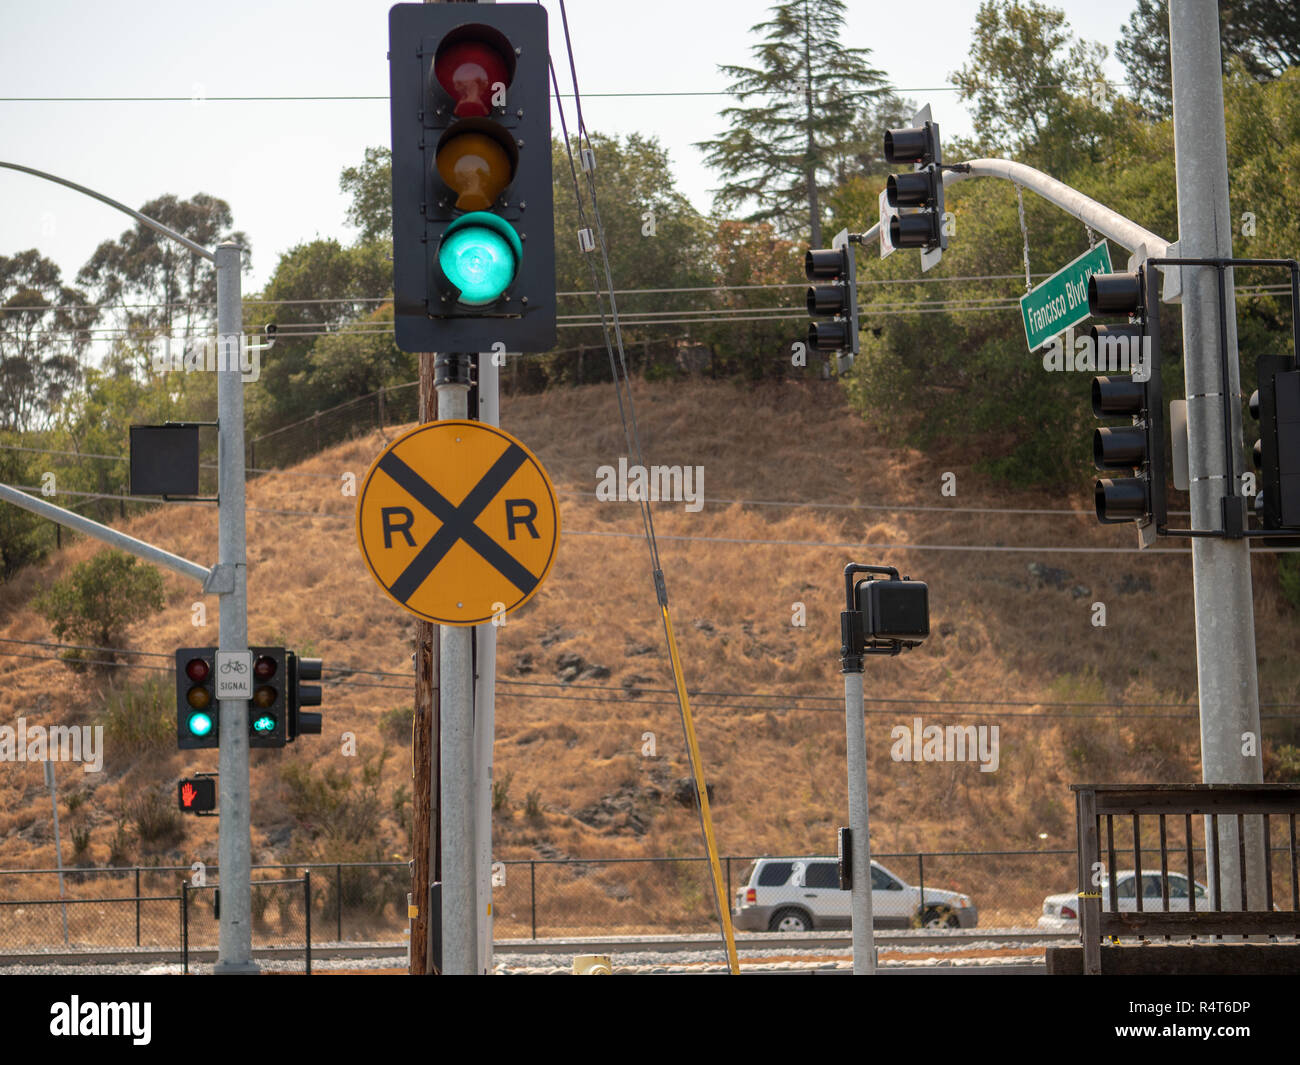 Railroad crossing sign on a track intersection on a busy street with hill - Stock Image